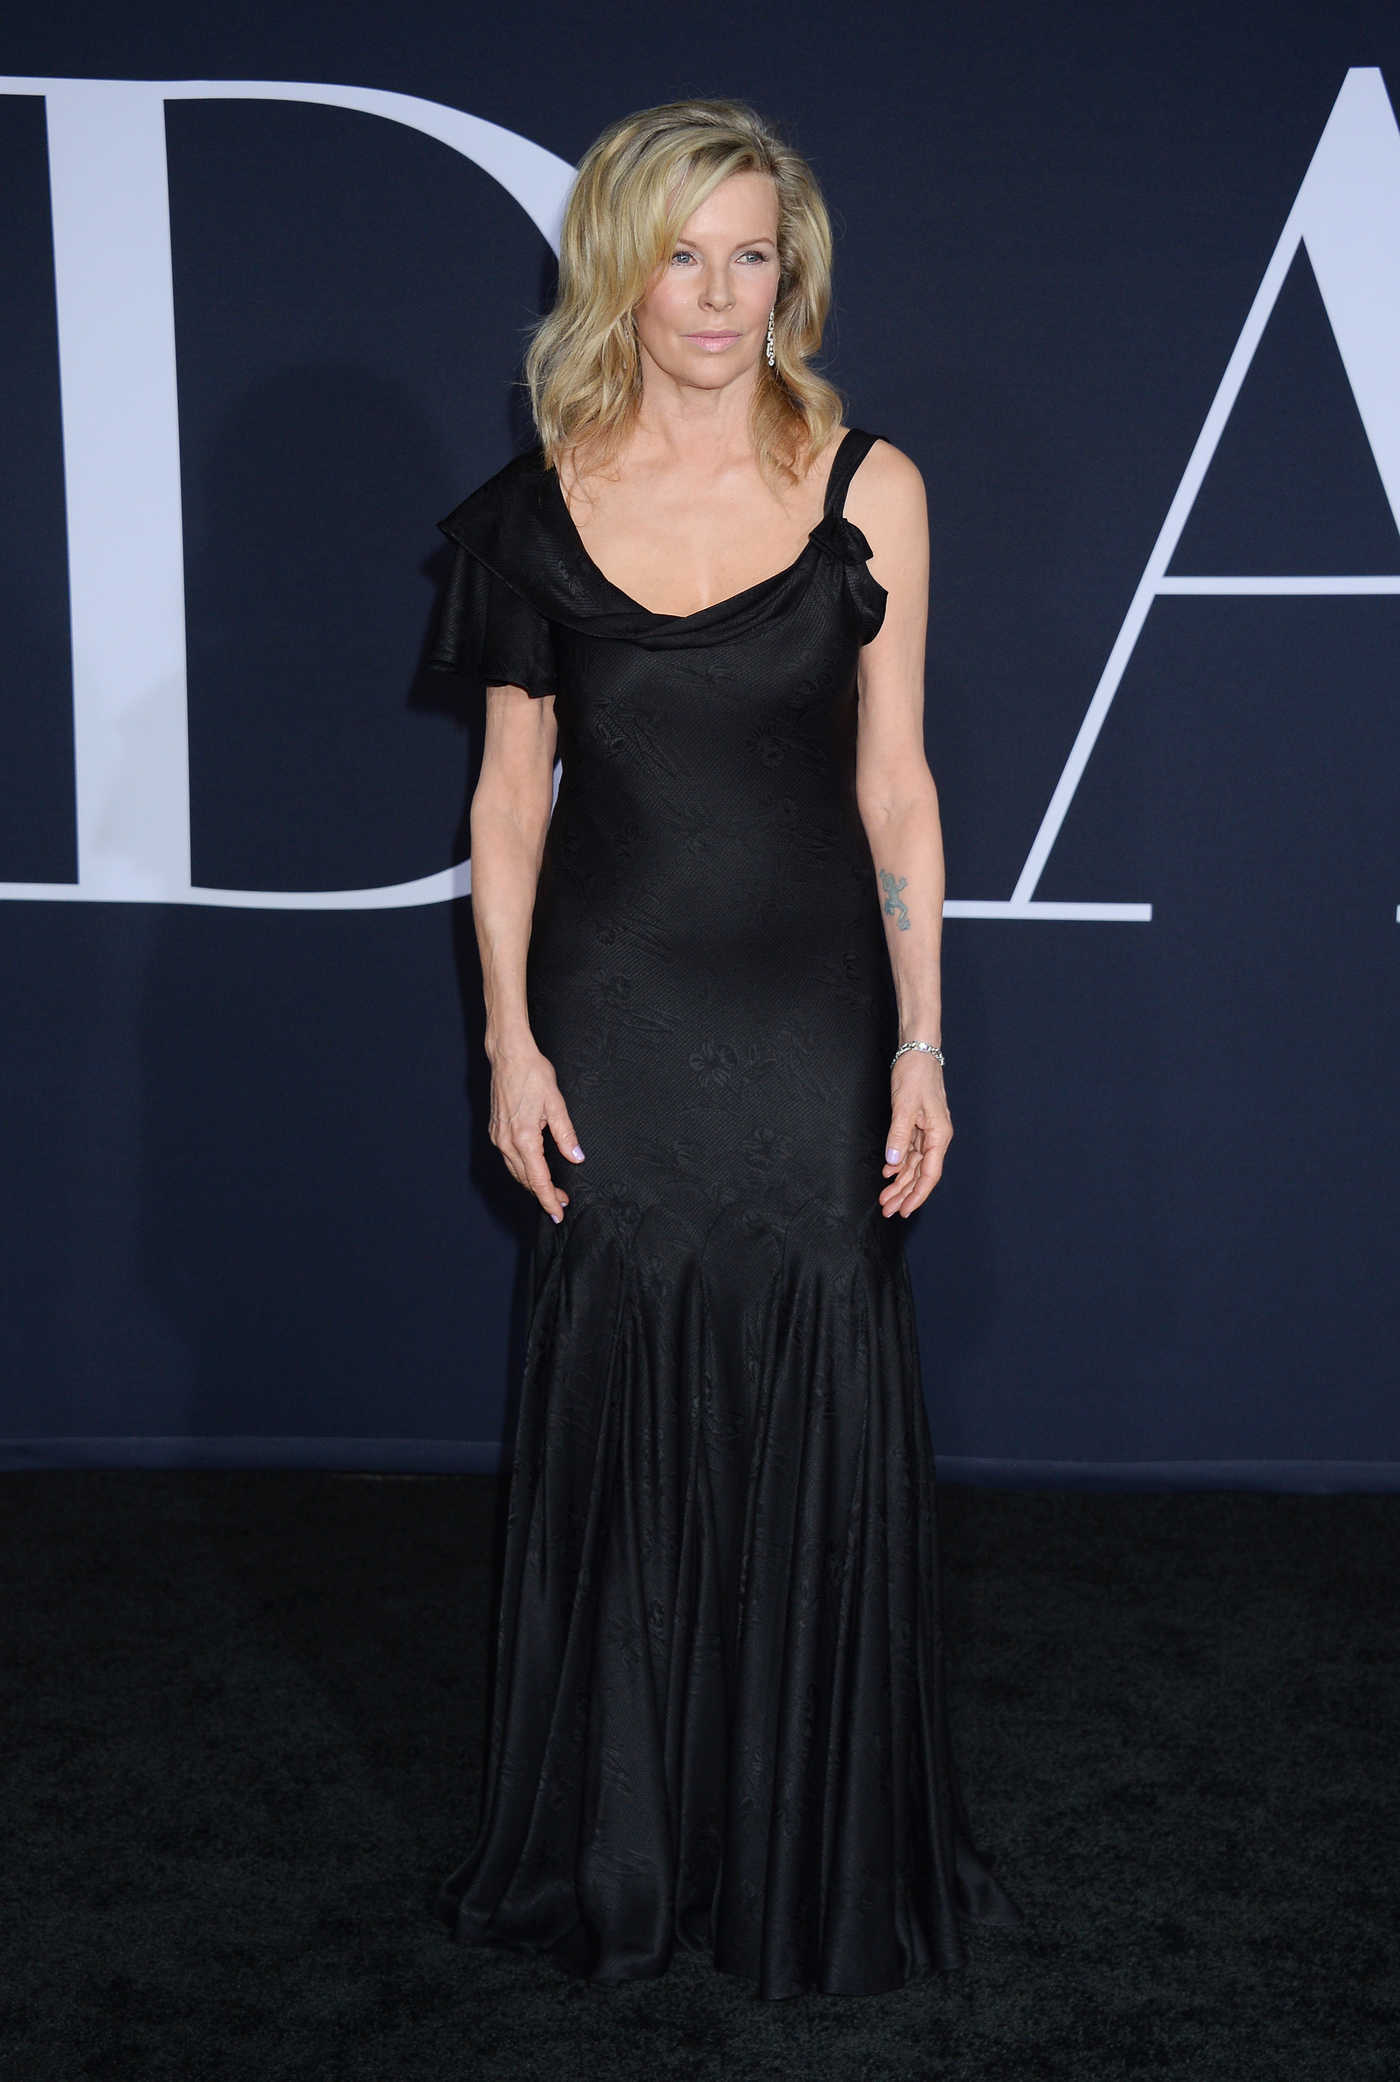 Kim Basinger at the Fifty Shades Darker Premiere in Los Angeles 02/02/2017